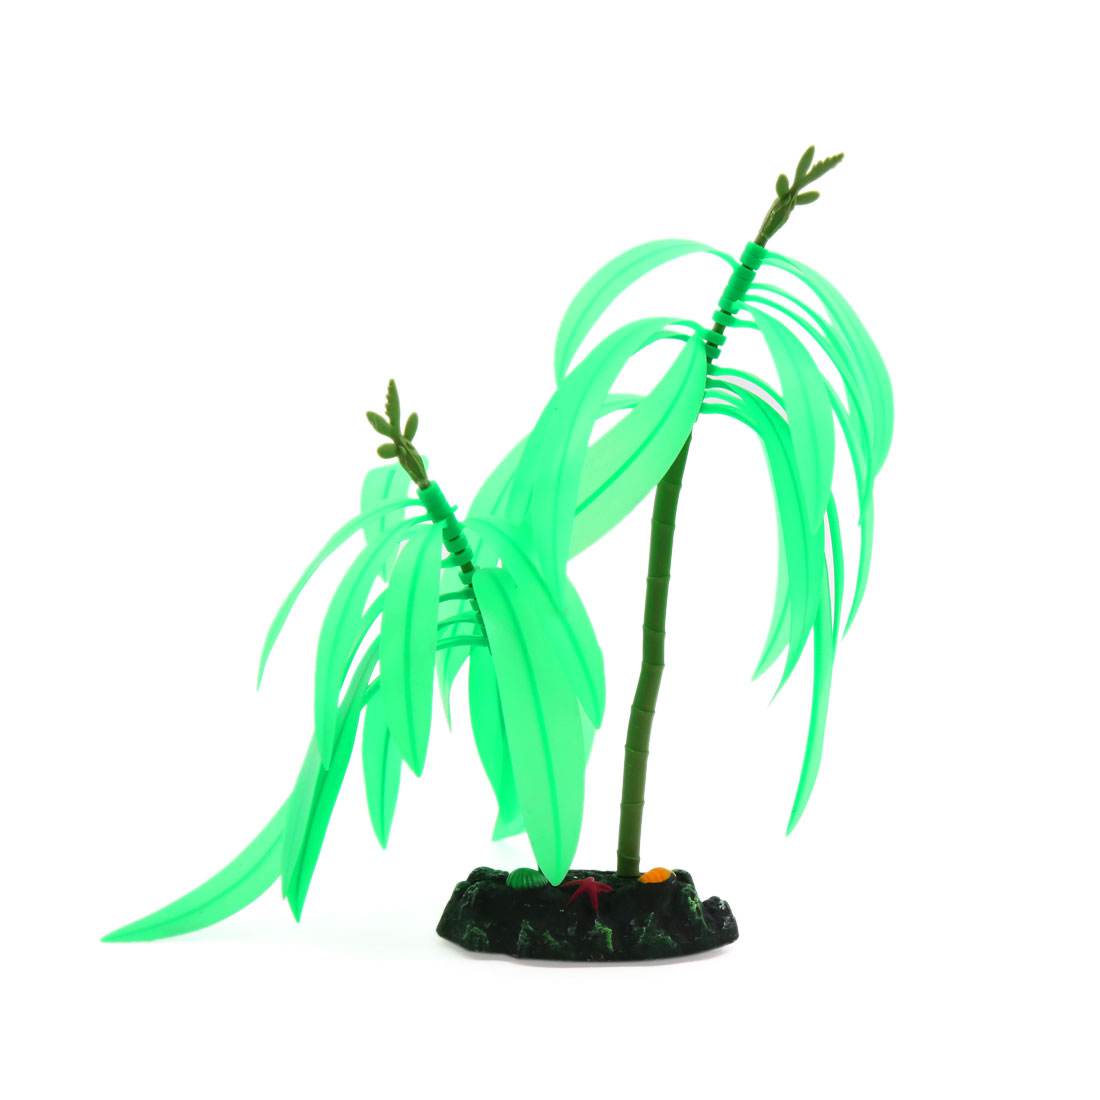 Two Branches Glowing Effect Fish Tank Aquarium Artificial Coral Plant Green